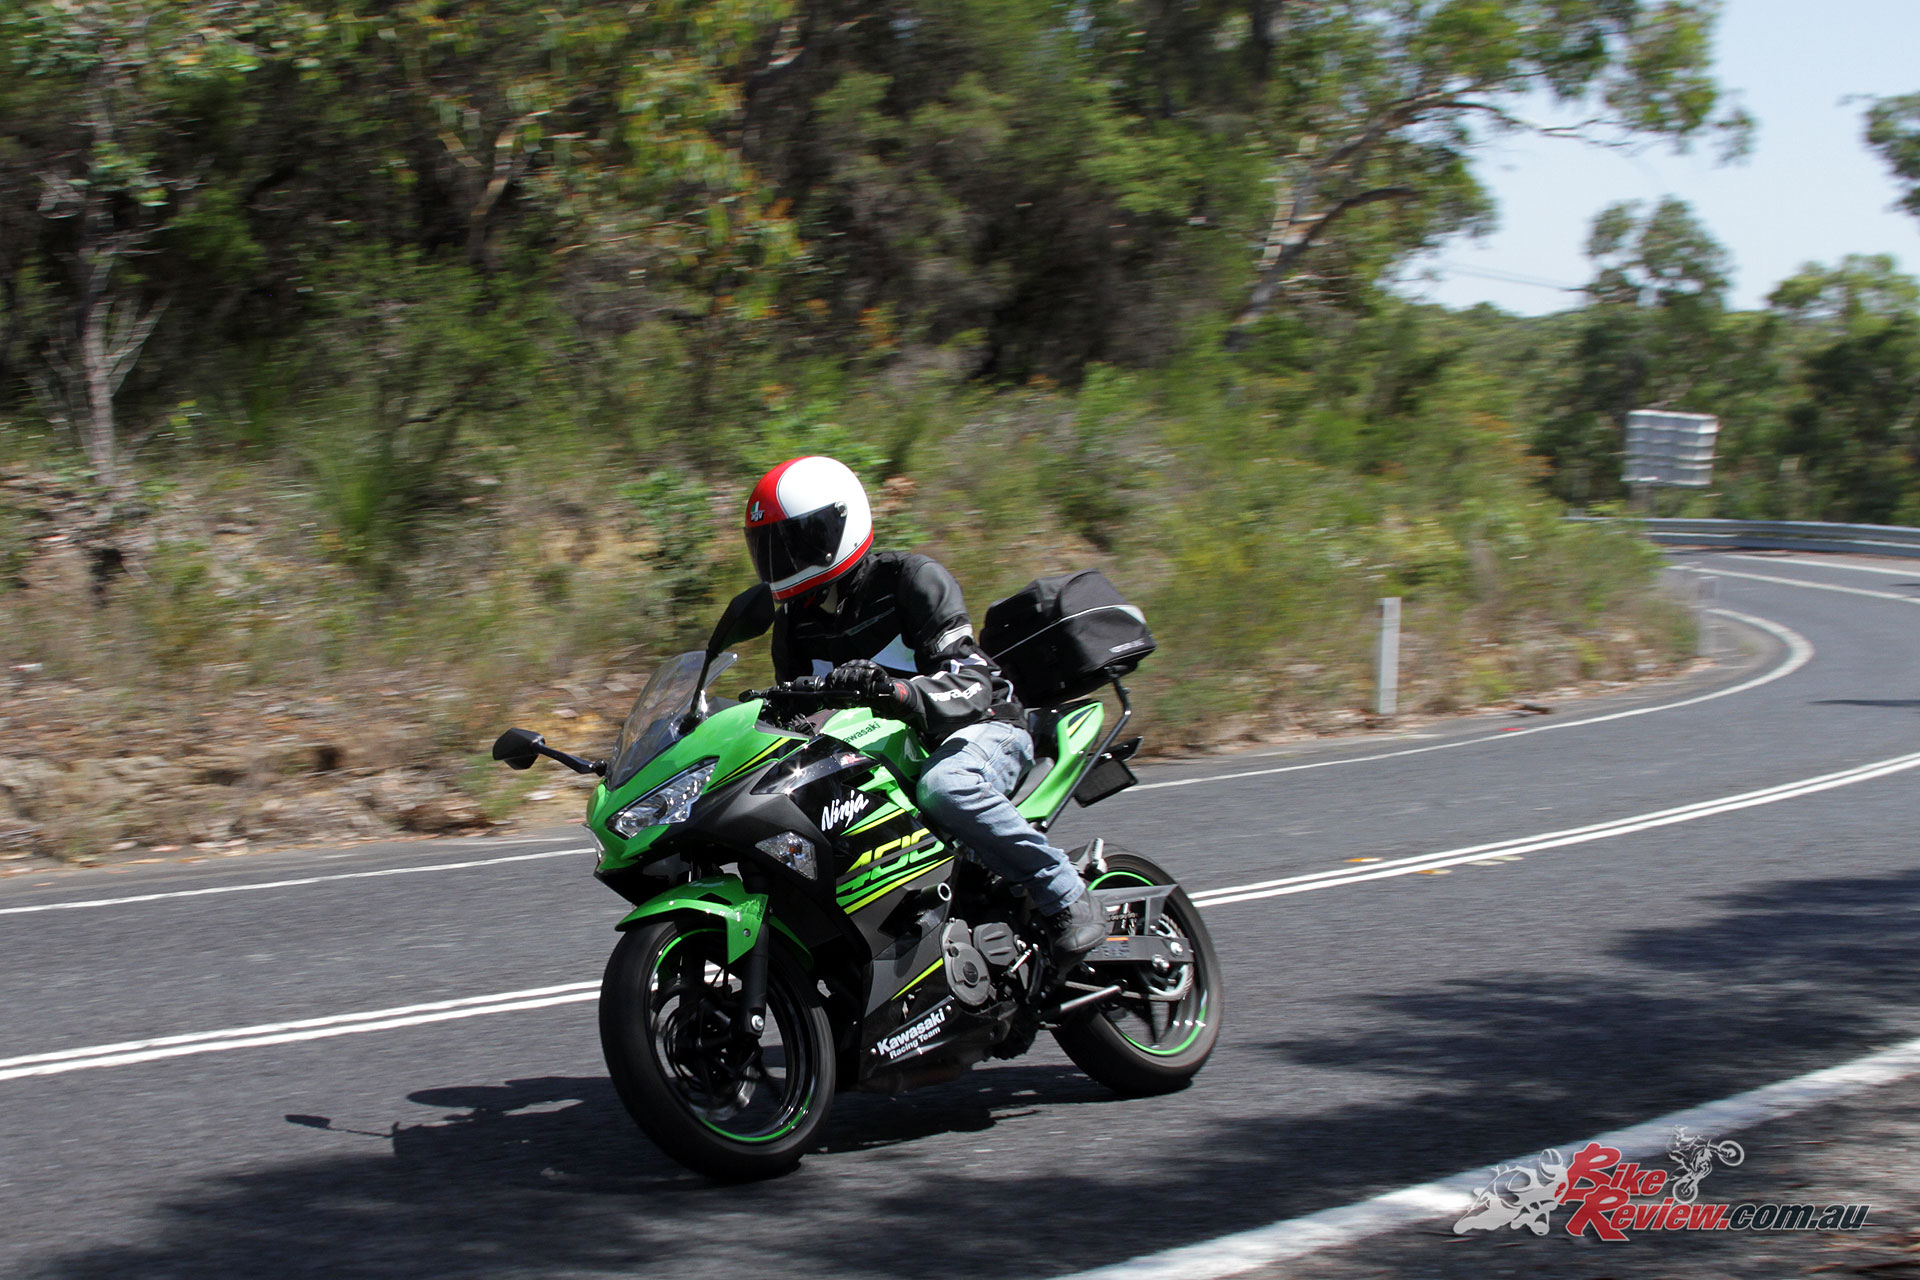 The Ninja 400 fueling on a closing throttle could do with some refinement, although whether that's something Kawasaki are able to do with the super strict emissions regulations these days in another question!